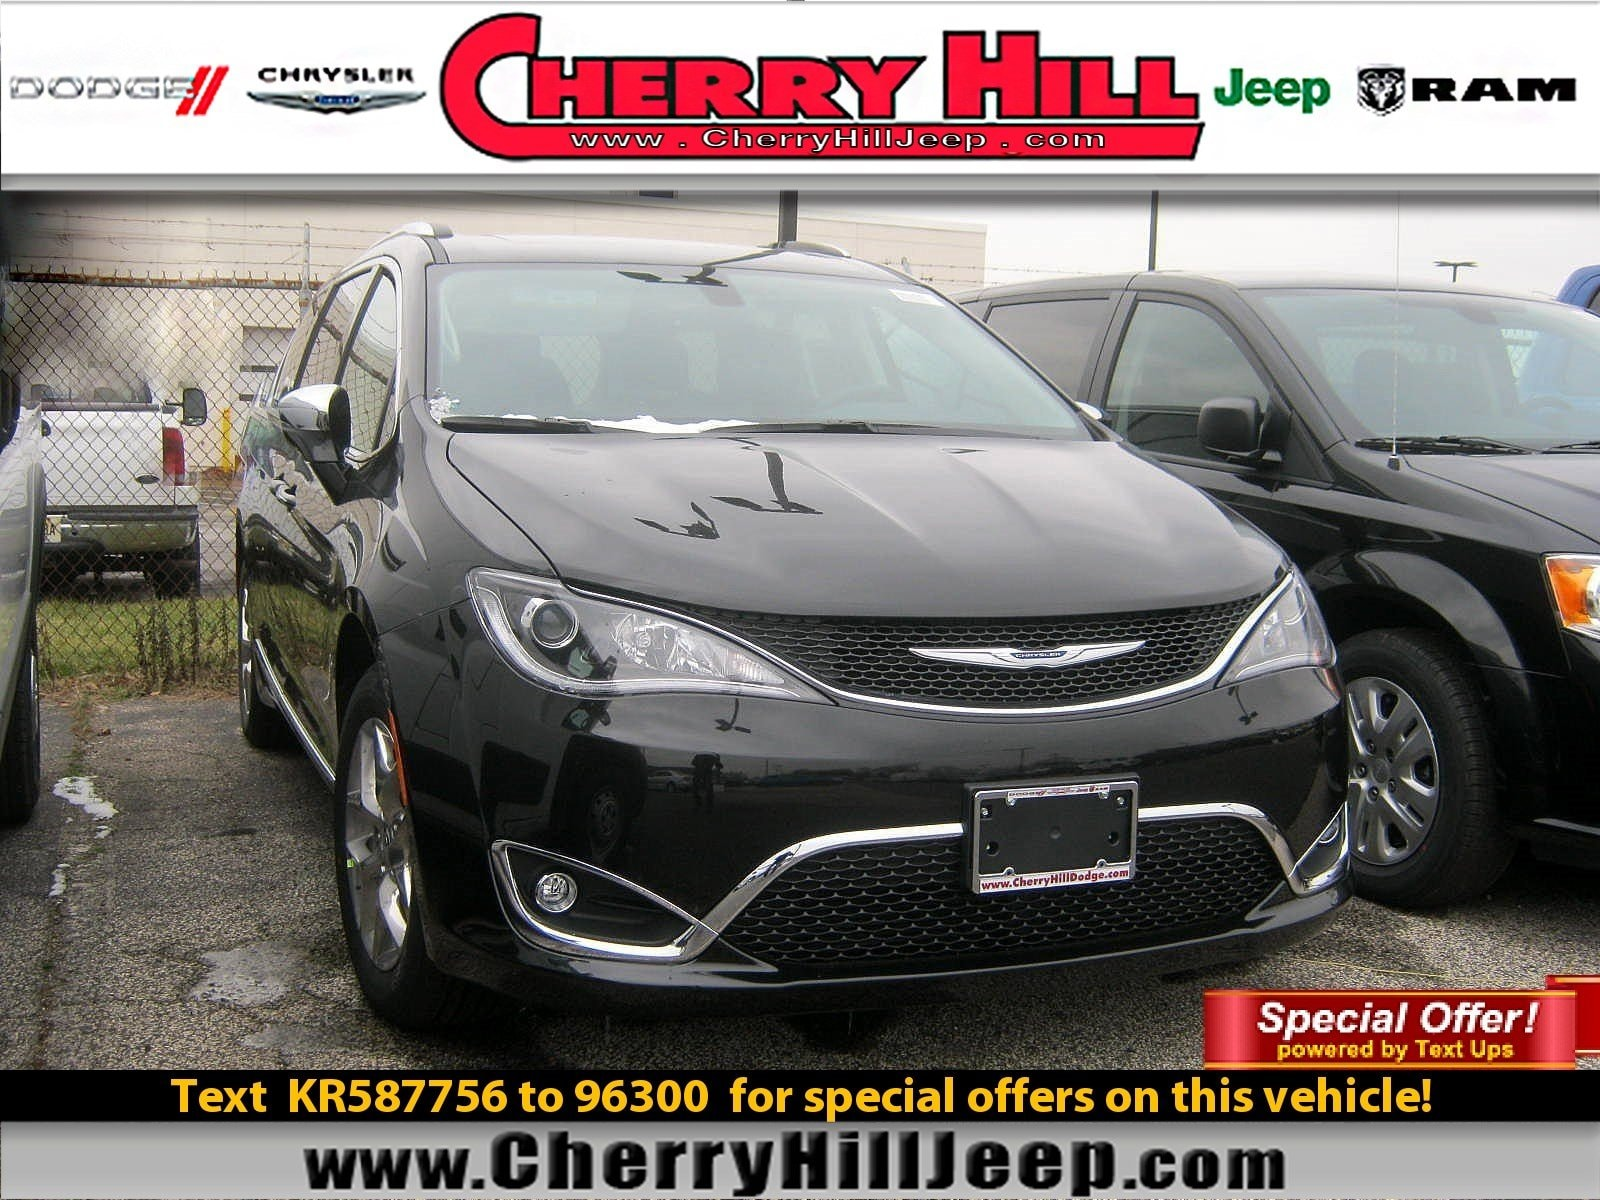 New And Used Cars For Sale In Cherry Hill Nj Cherry Hill Dodge